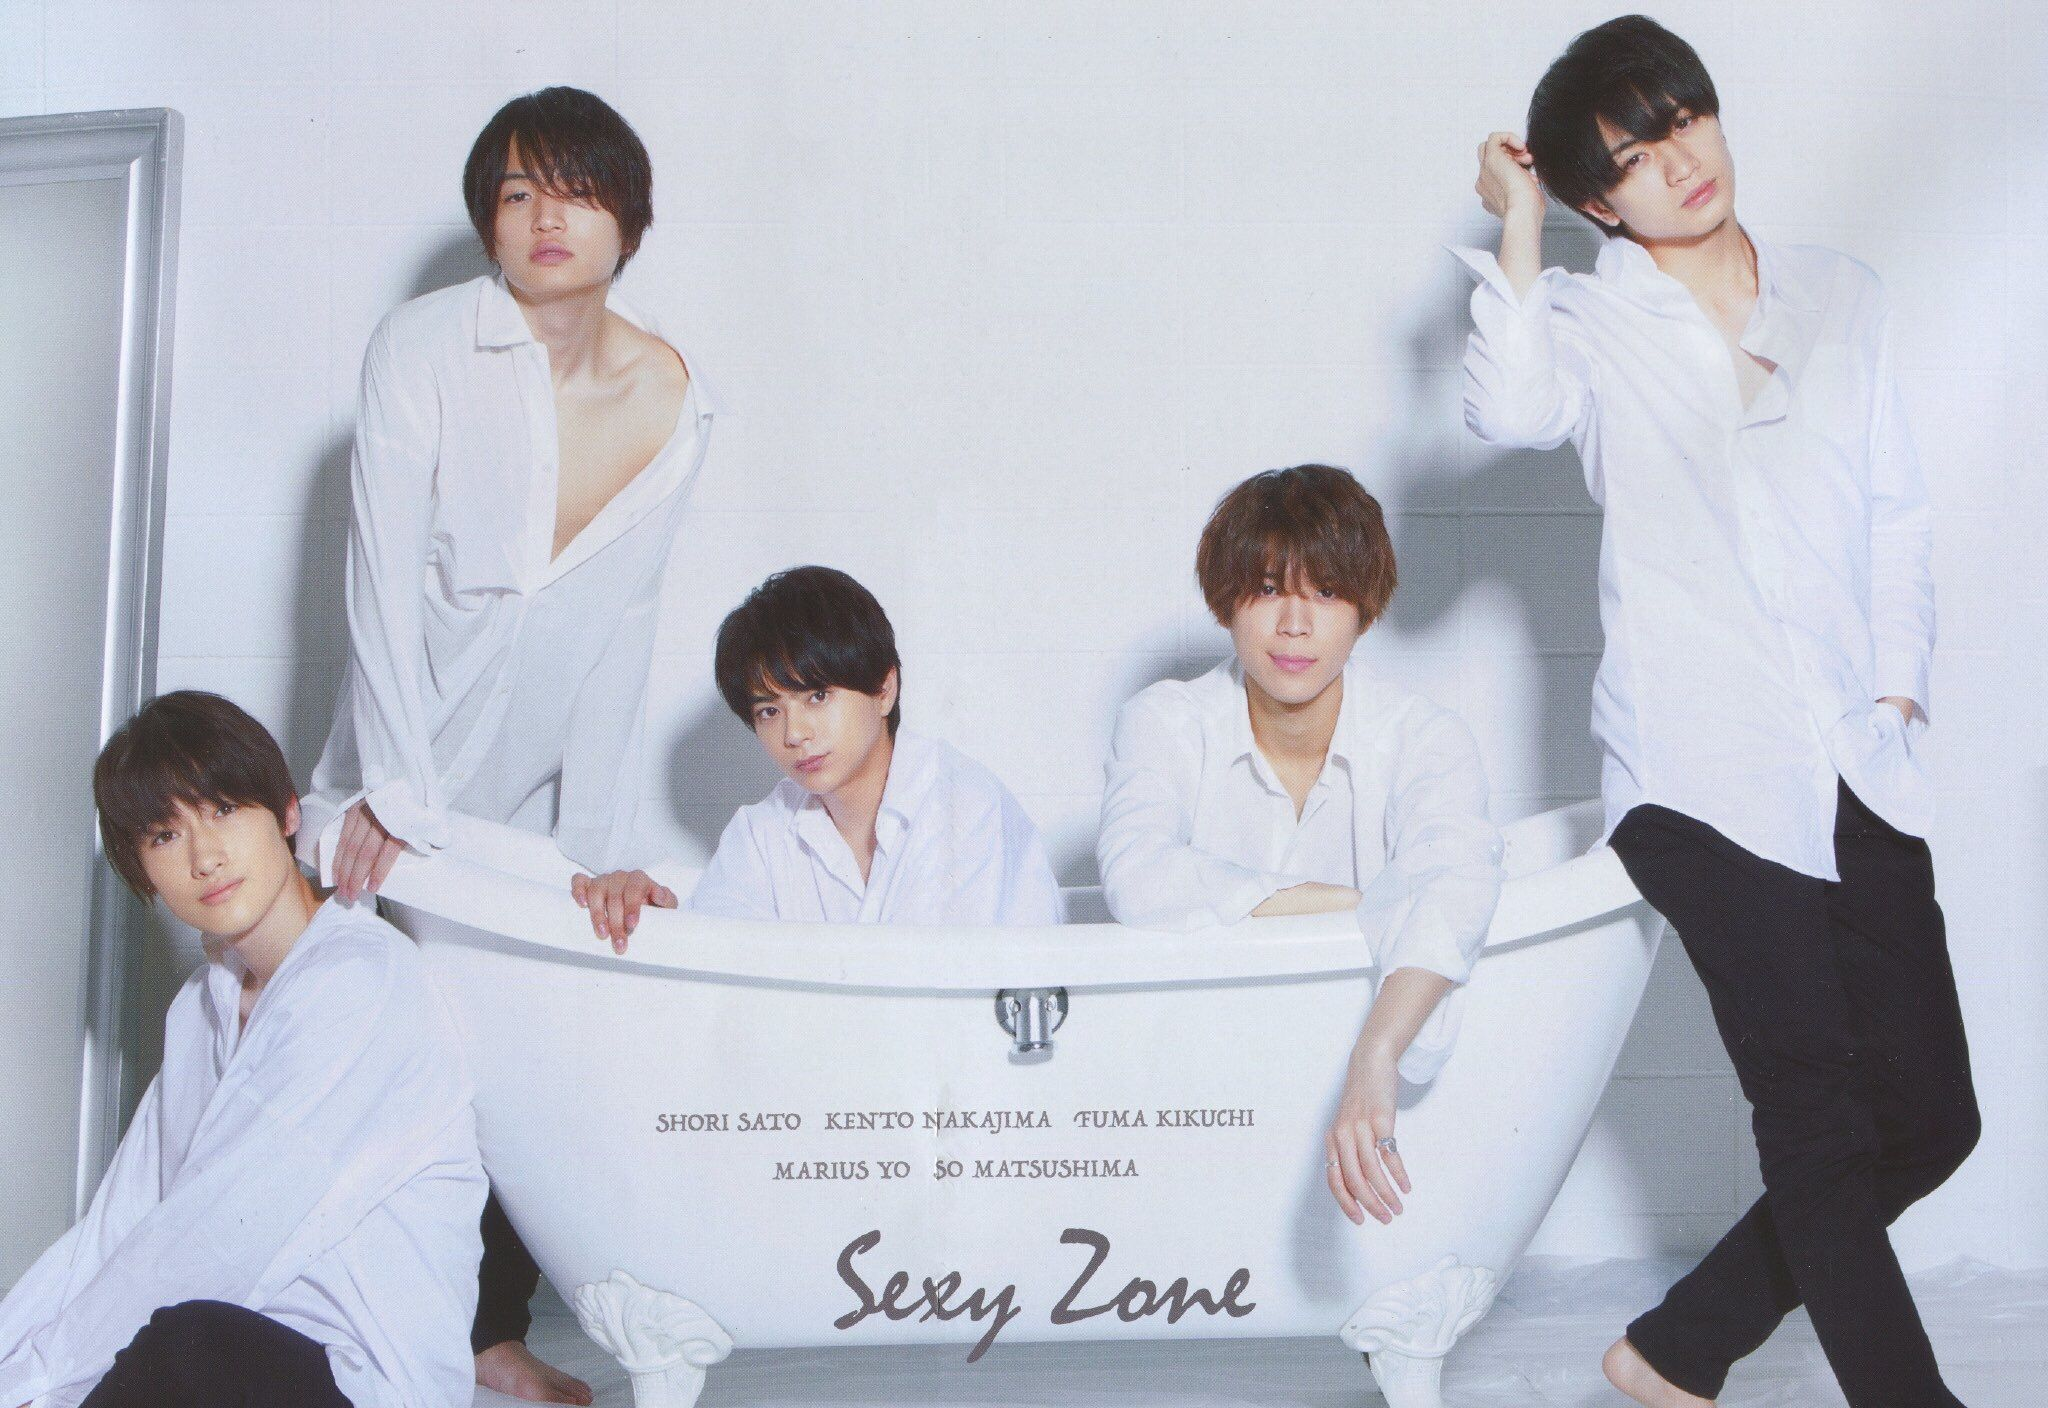 Sexy Zone Idol Sexy Zone In 2019 セクシーゾーン セクシー 松島聡